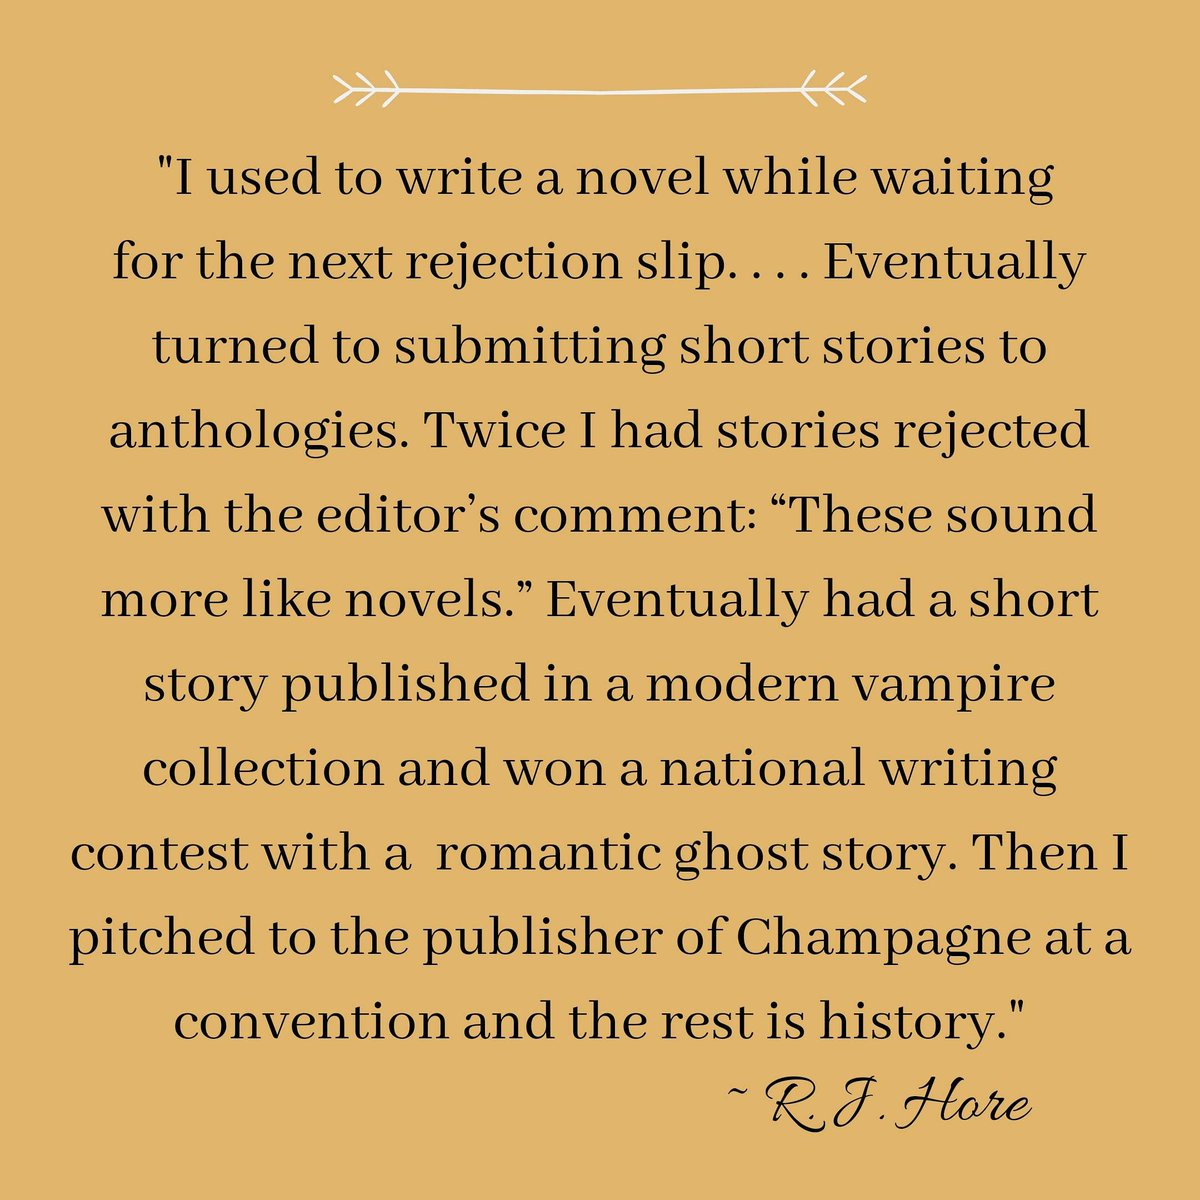 Who doesn't love a good writing success story?! Here is a quote from CBG author R. J. Hore about how he got into writing novels. He had THREE novels come out earlier this month--have you had a chance to check them out yet?  #champagnebooks #writing #successstory #indiepublishing https://t.co/1JU4TrRu3y